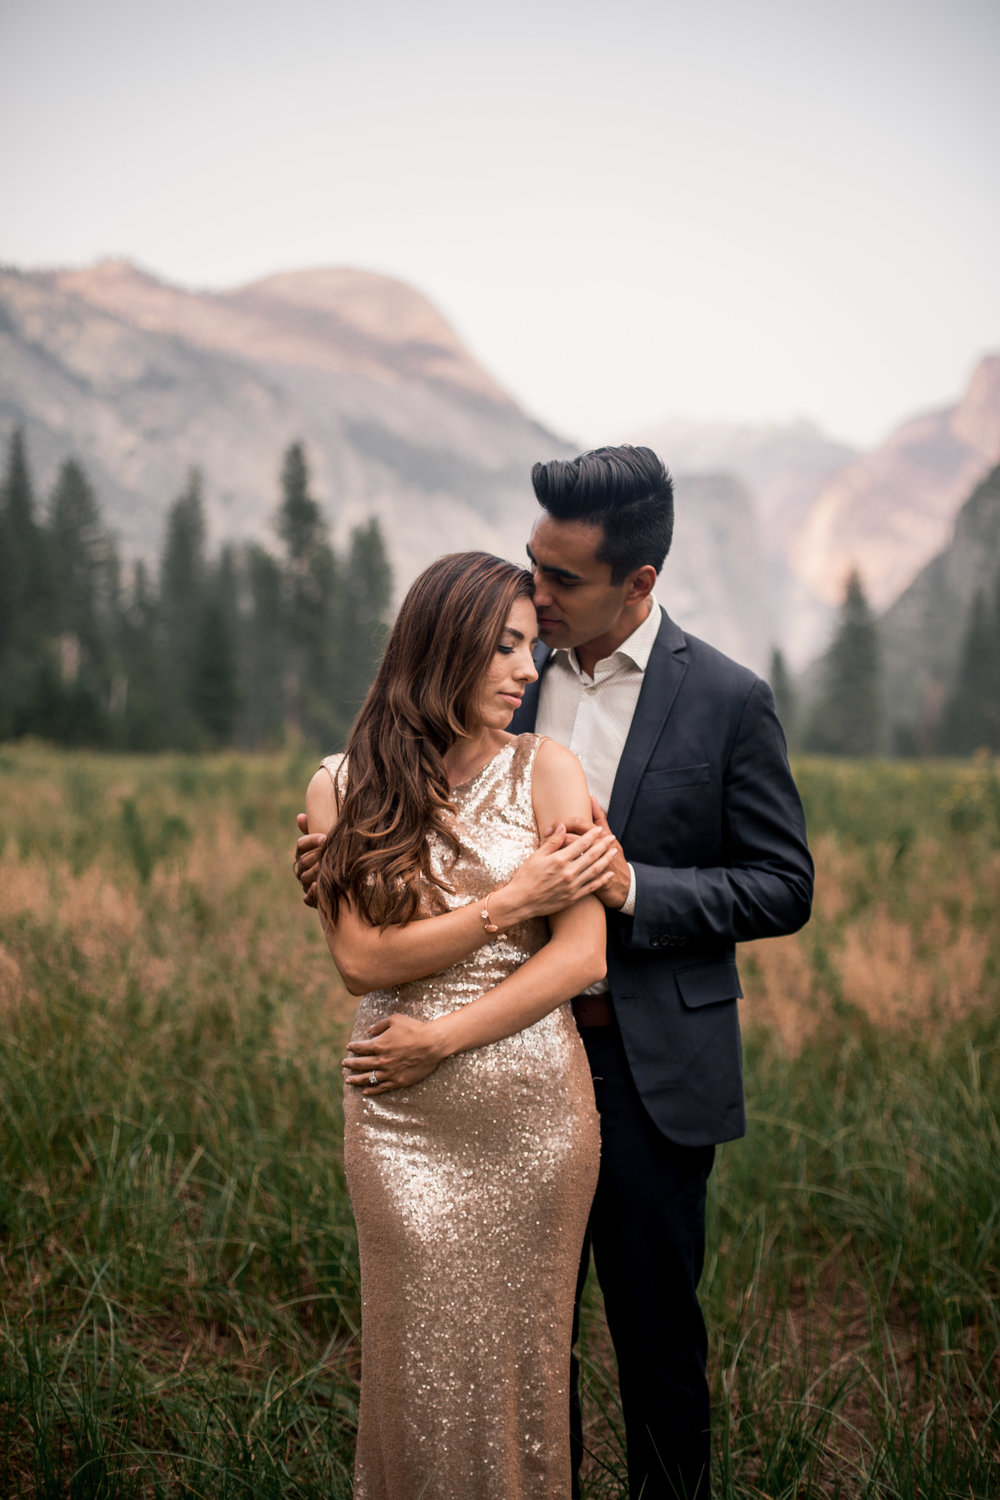 nicole-daacke-photography-yosemite-national-park-adventurous-engagement-session-half-dome-engagement-session-anniversary-photographer-yosemite-elopement-photographer-yosemite-intimate-wedding-photography-23.jpg